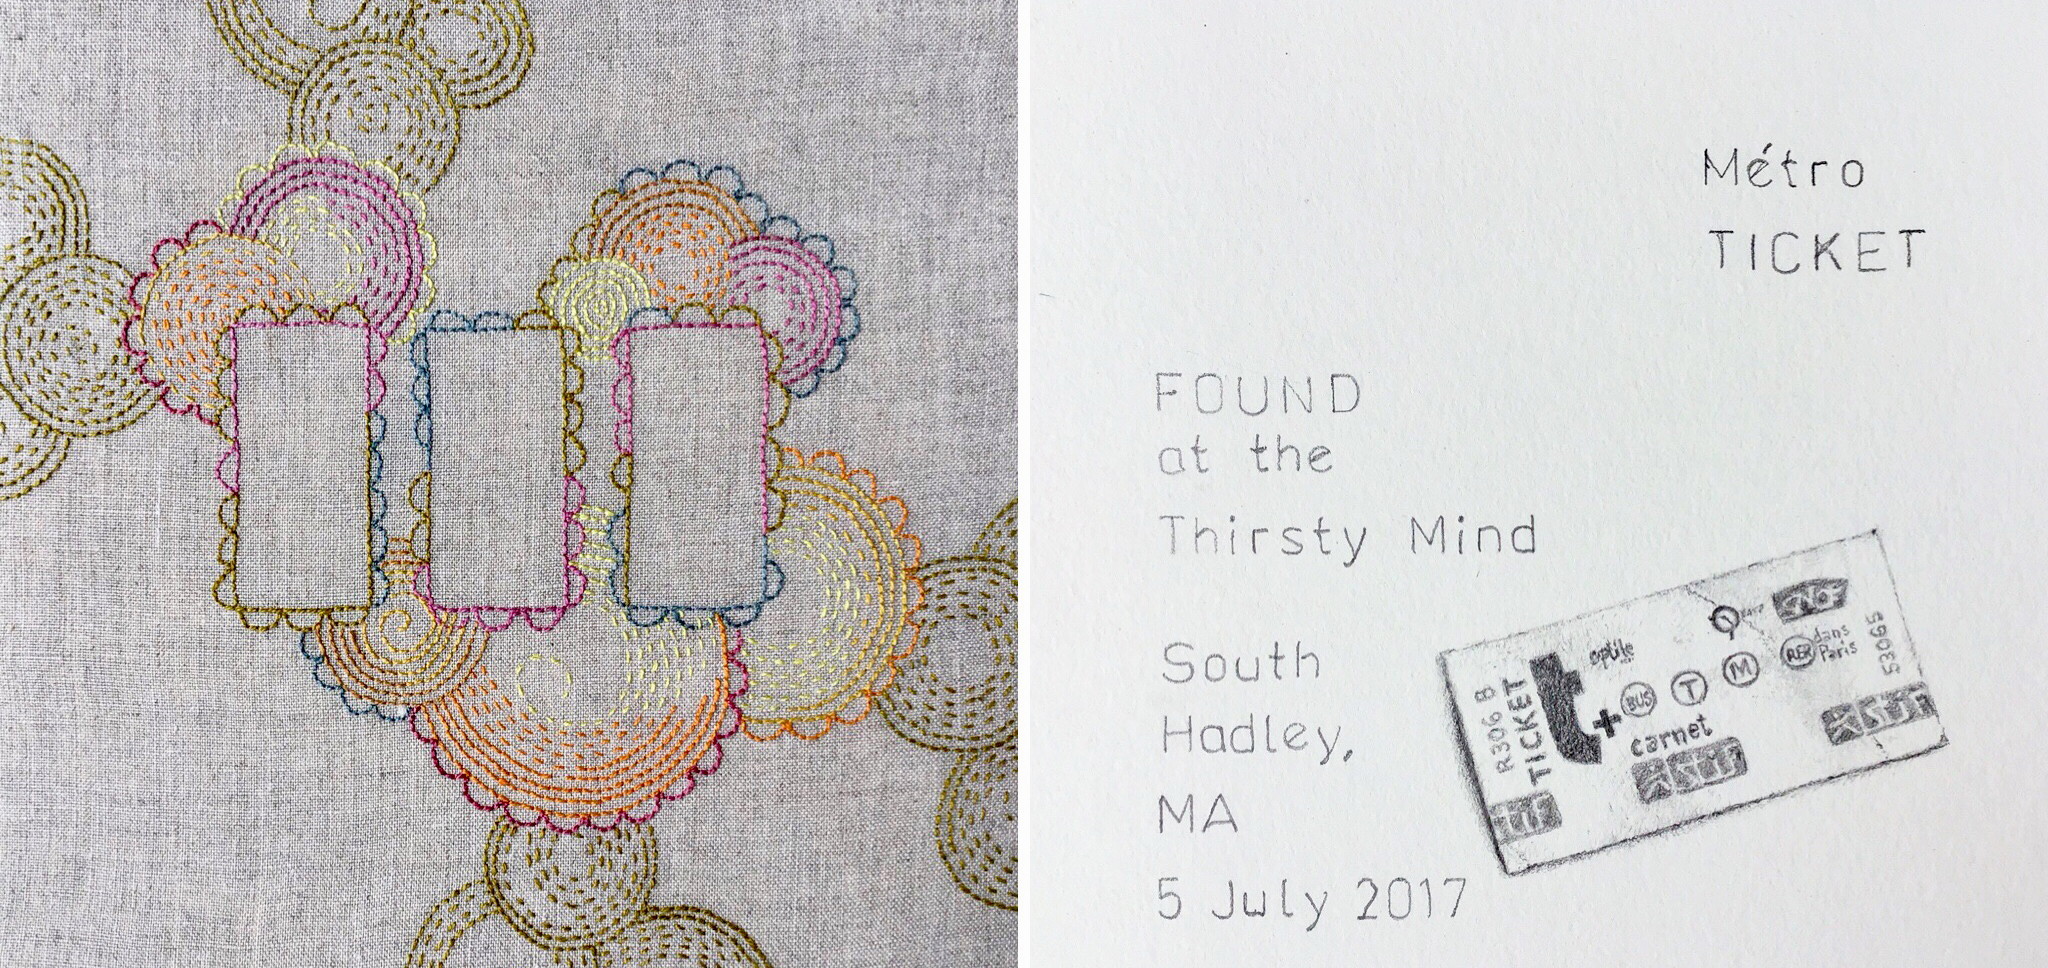 Presence/Absence: Metro Ticket, 2017, pearl cotton on linen and graphite on paper (found object diptych)